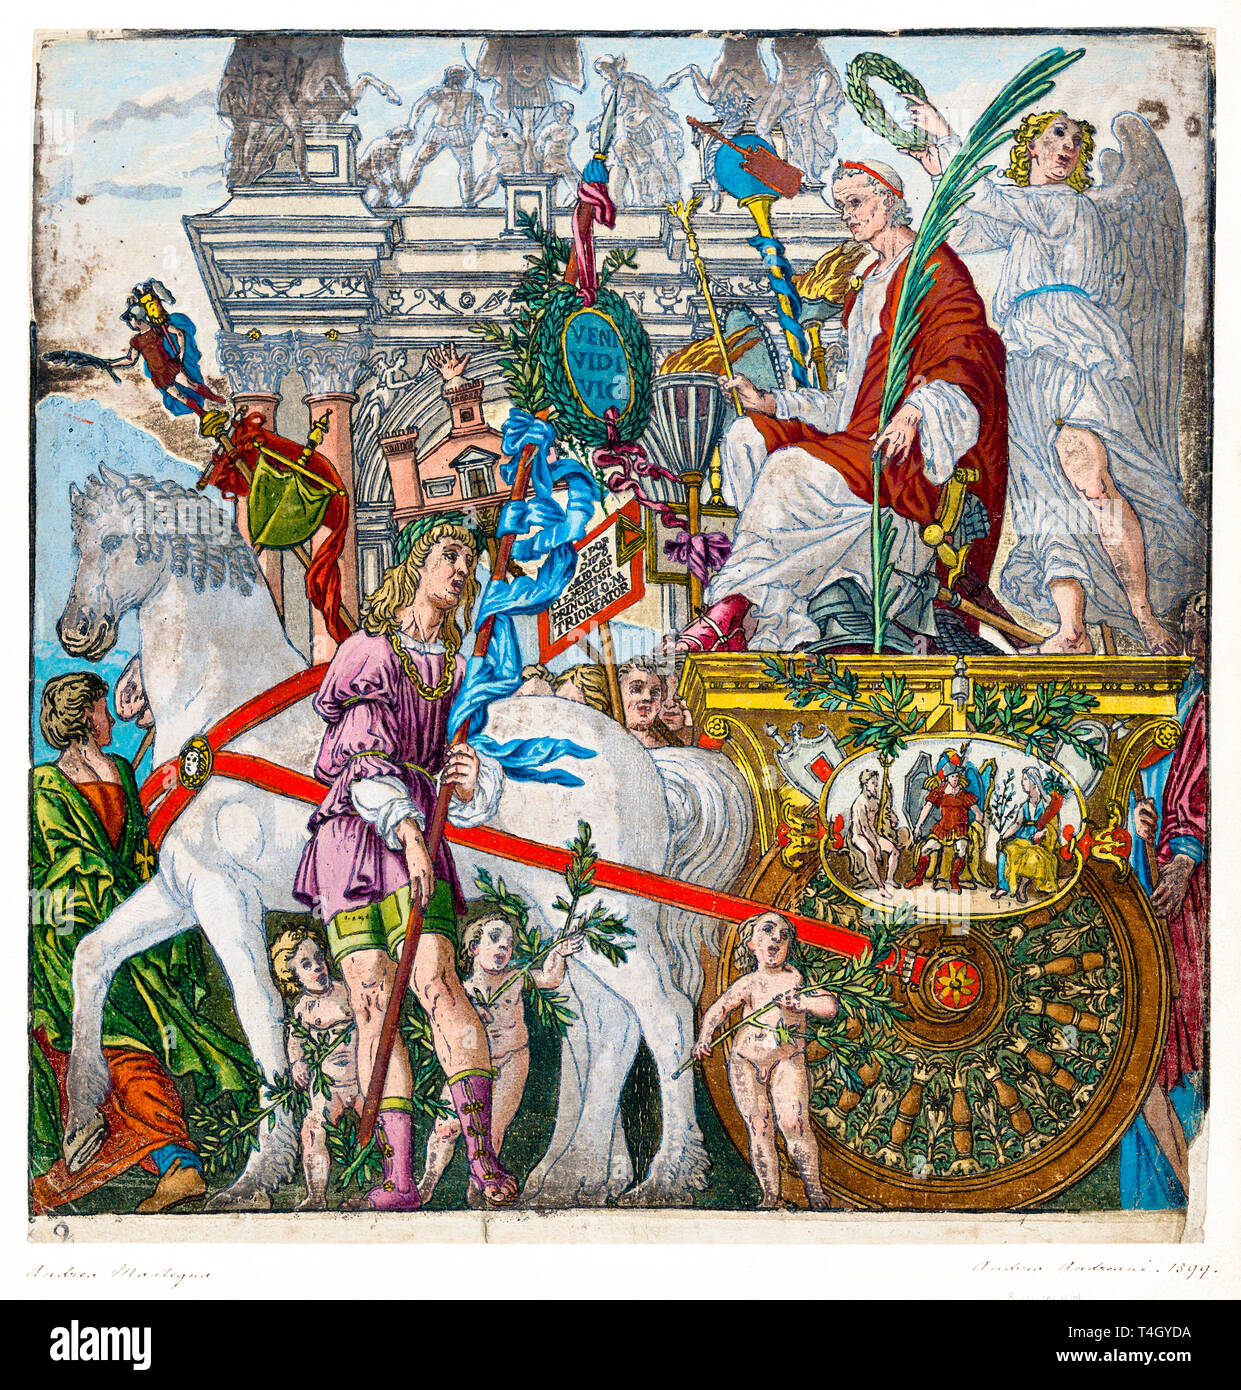 Julius Caesar in his horse-drawn chariot, Andrea Andreani, hand coloured woodcut print, 1599 Stock Photo